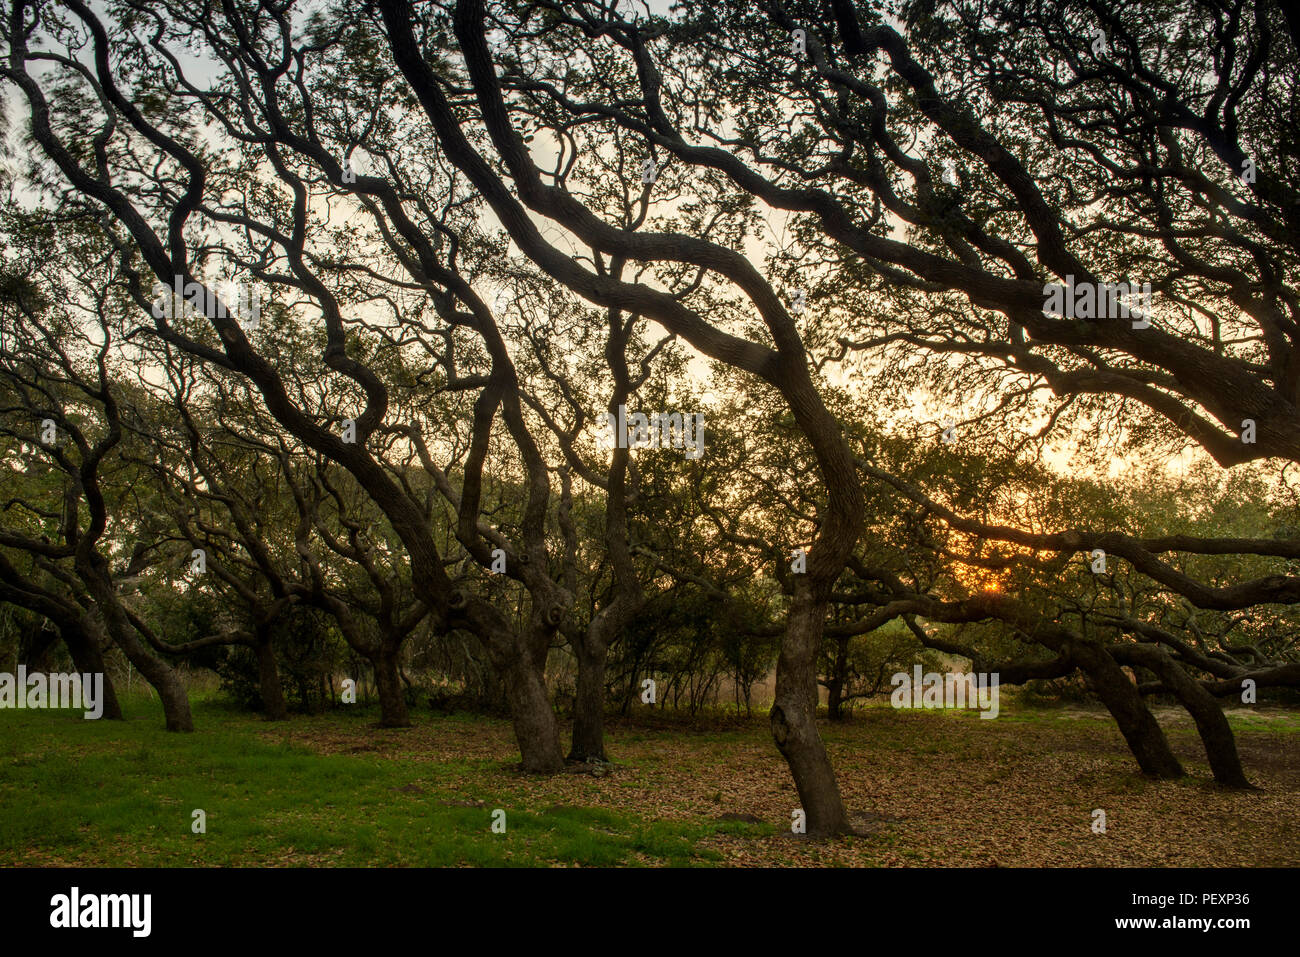 Southern live oak, Quercus virginiana, at dawn, Goose Island State Park, Texas, USA Stock Photo